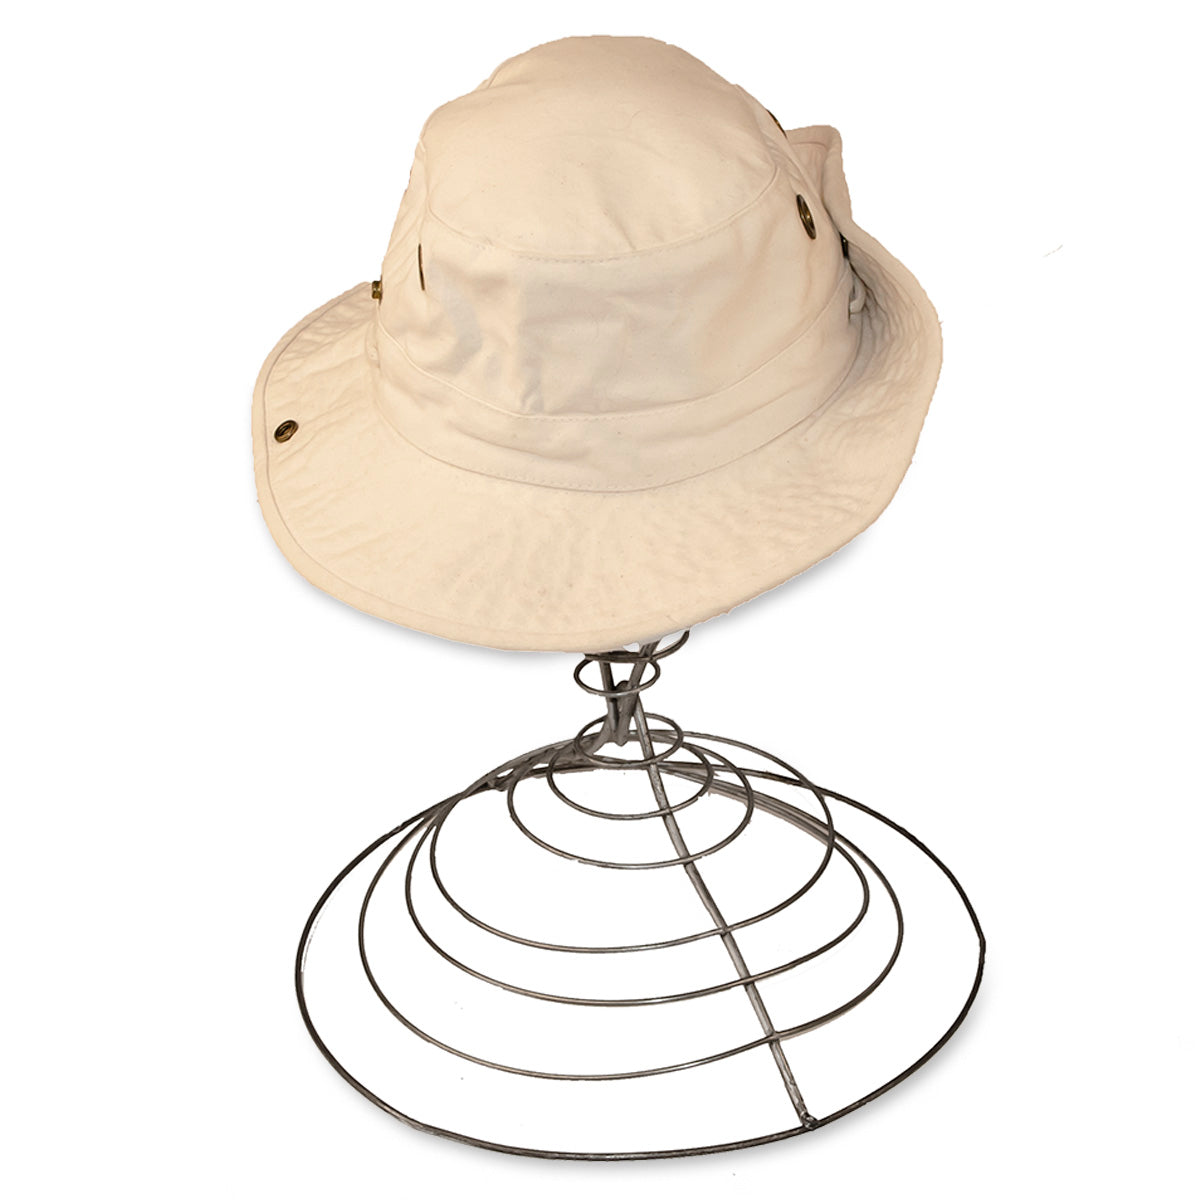 Tilly Travel Hat, Snap up Brim, Cream Canvas, Size 7 1/8